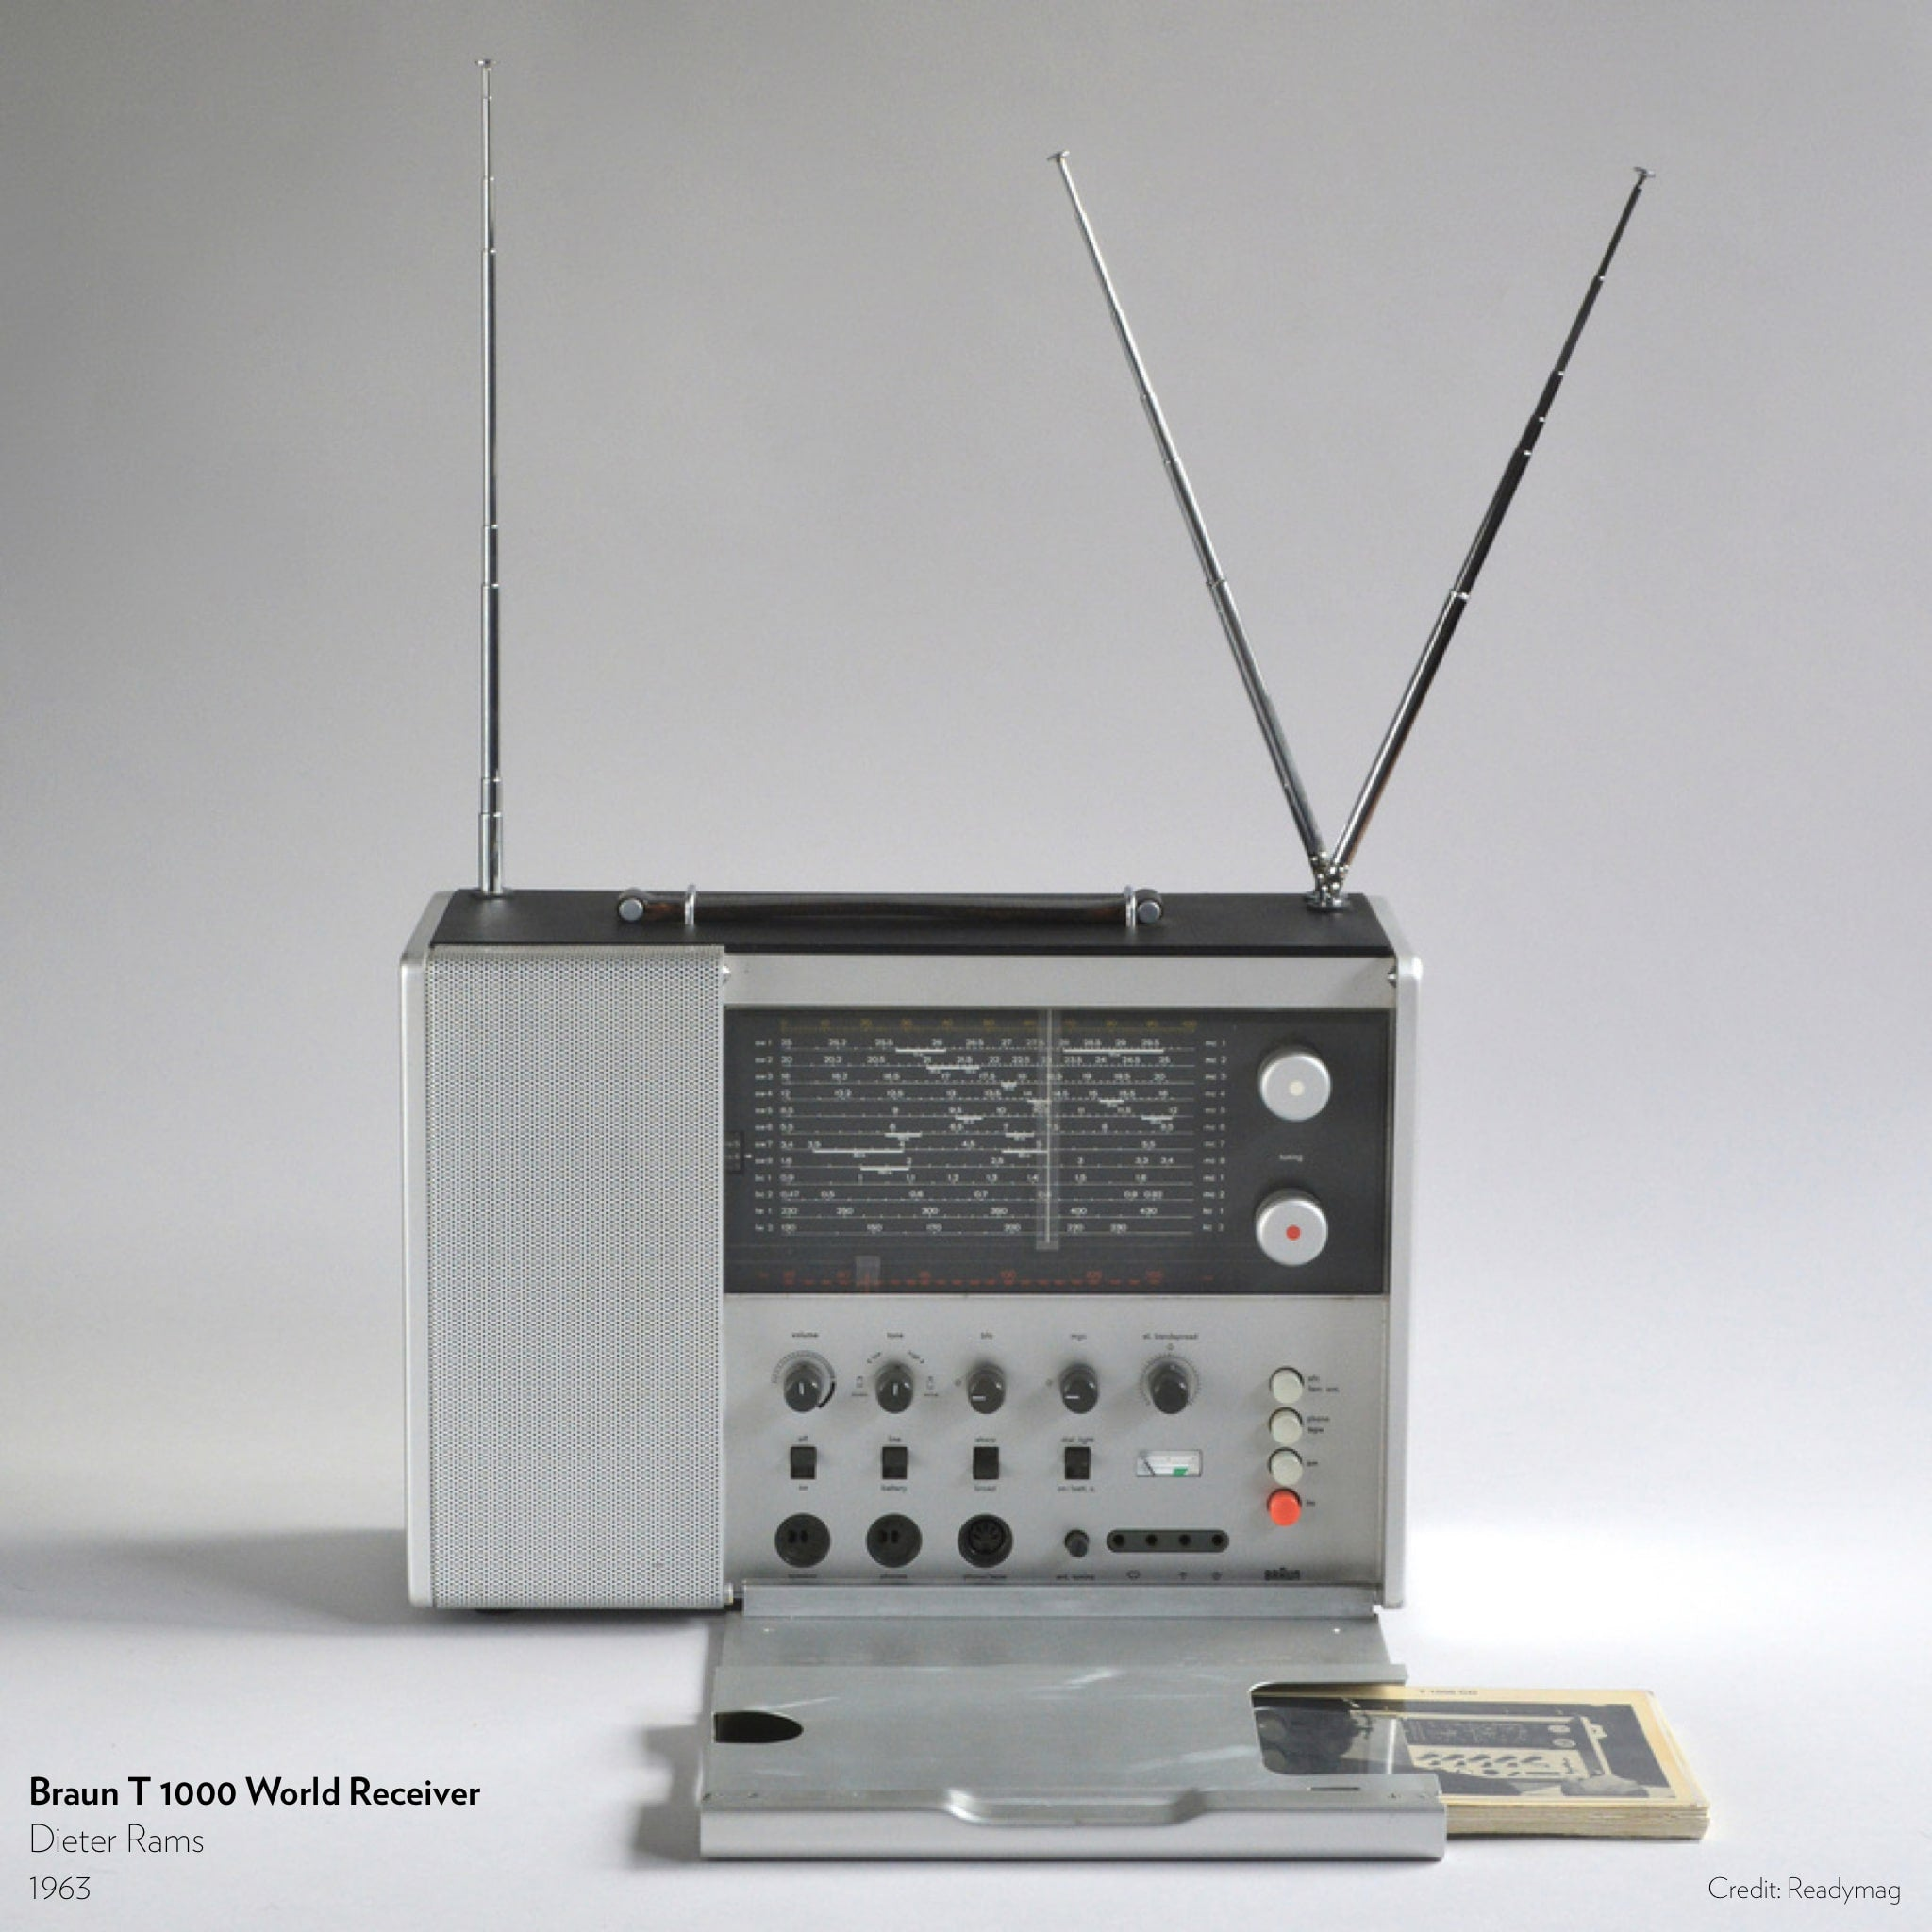 Braun T 1000 World Receiver designed by Dieter Rams in 1963.